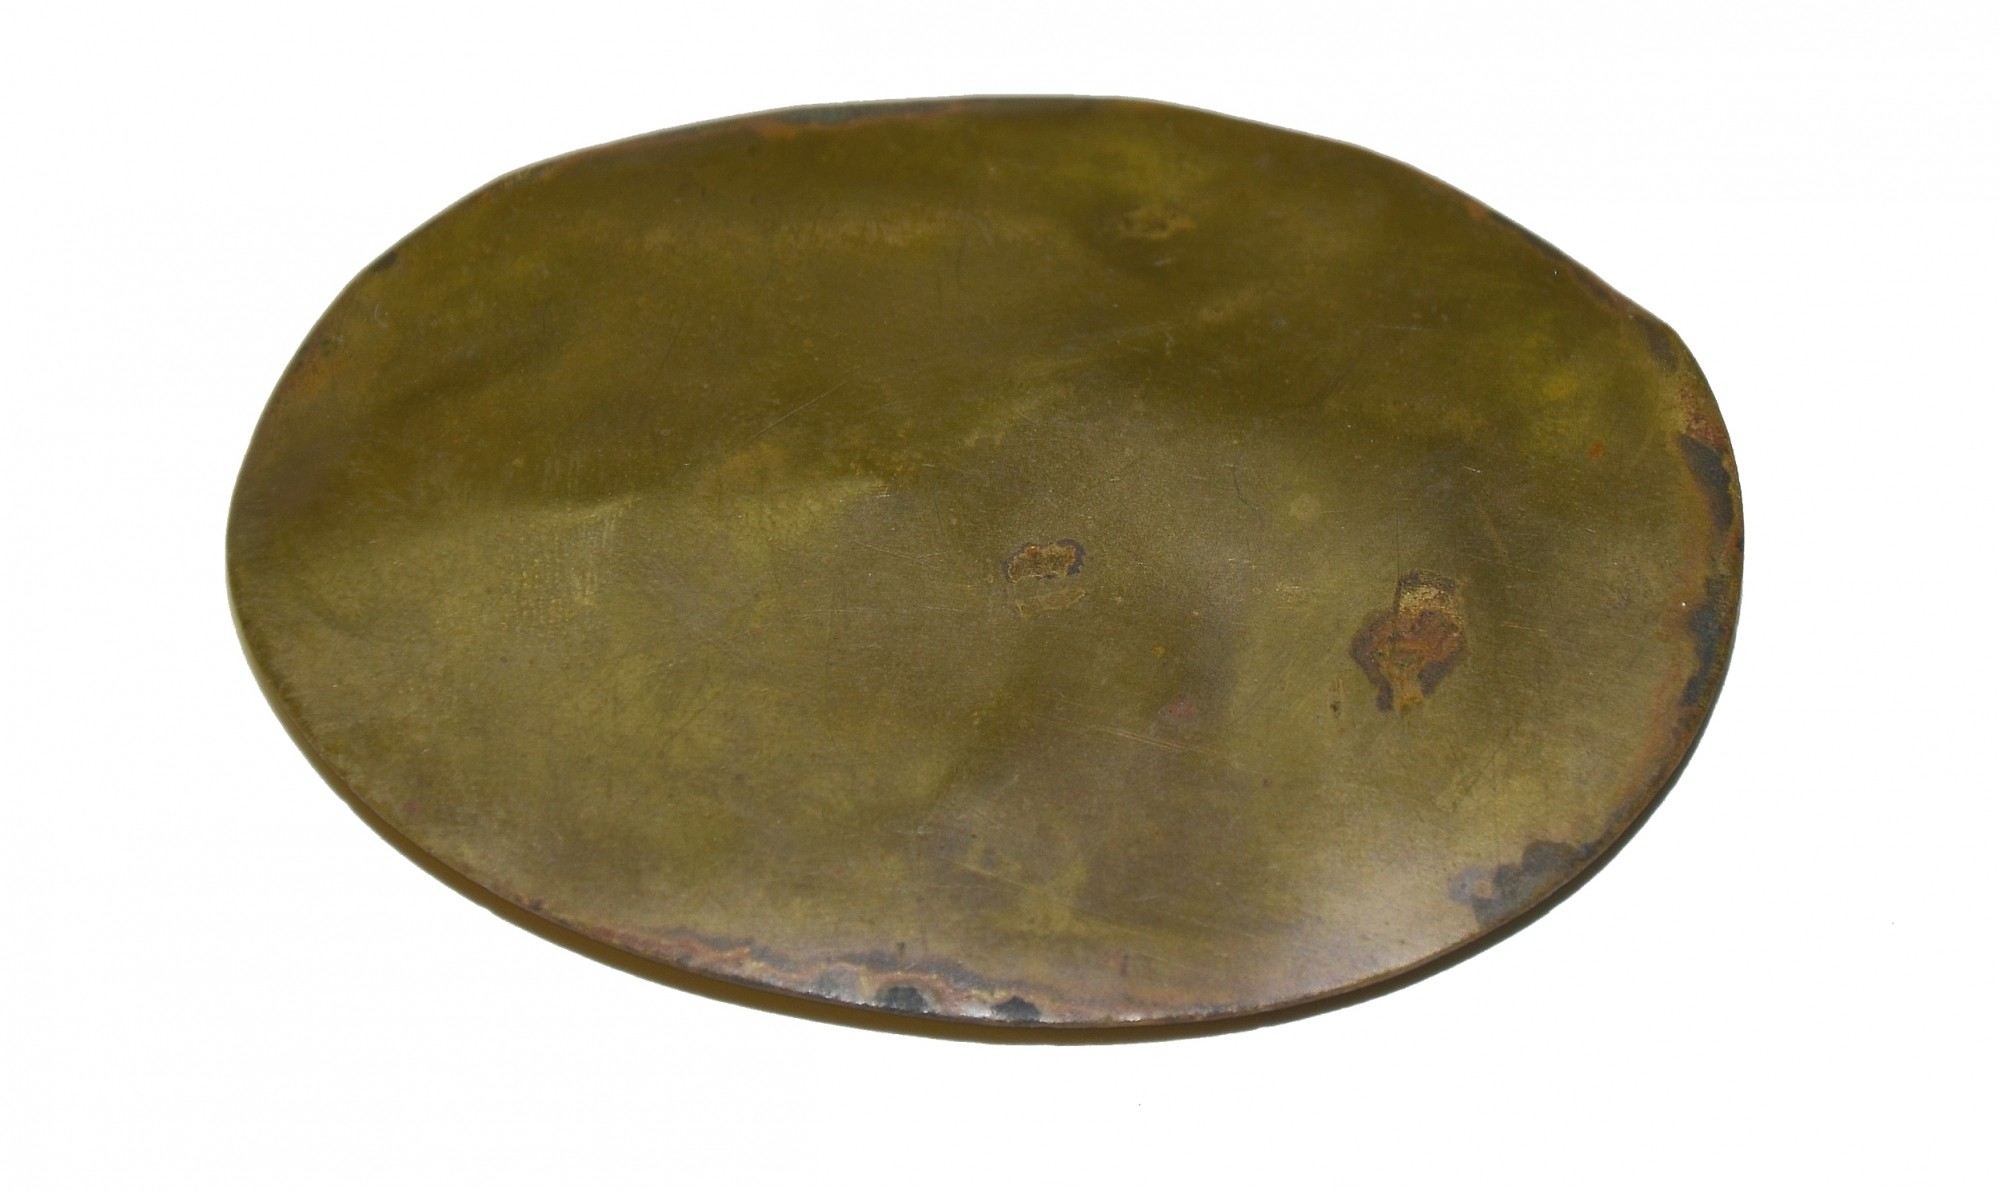 MILITIA CROSSBELT PLATE FROM THE GETTYSBURG ROSENSTEEL COLLECTION